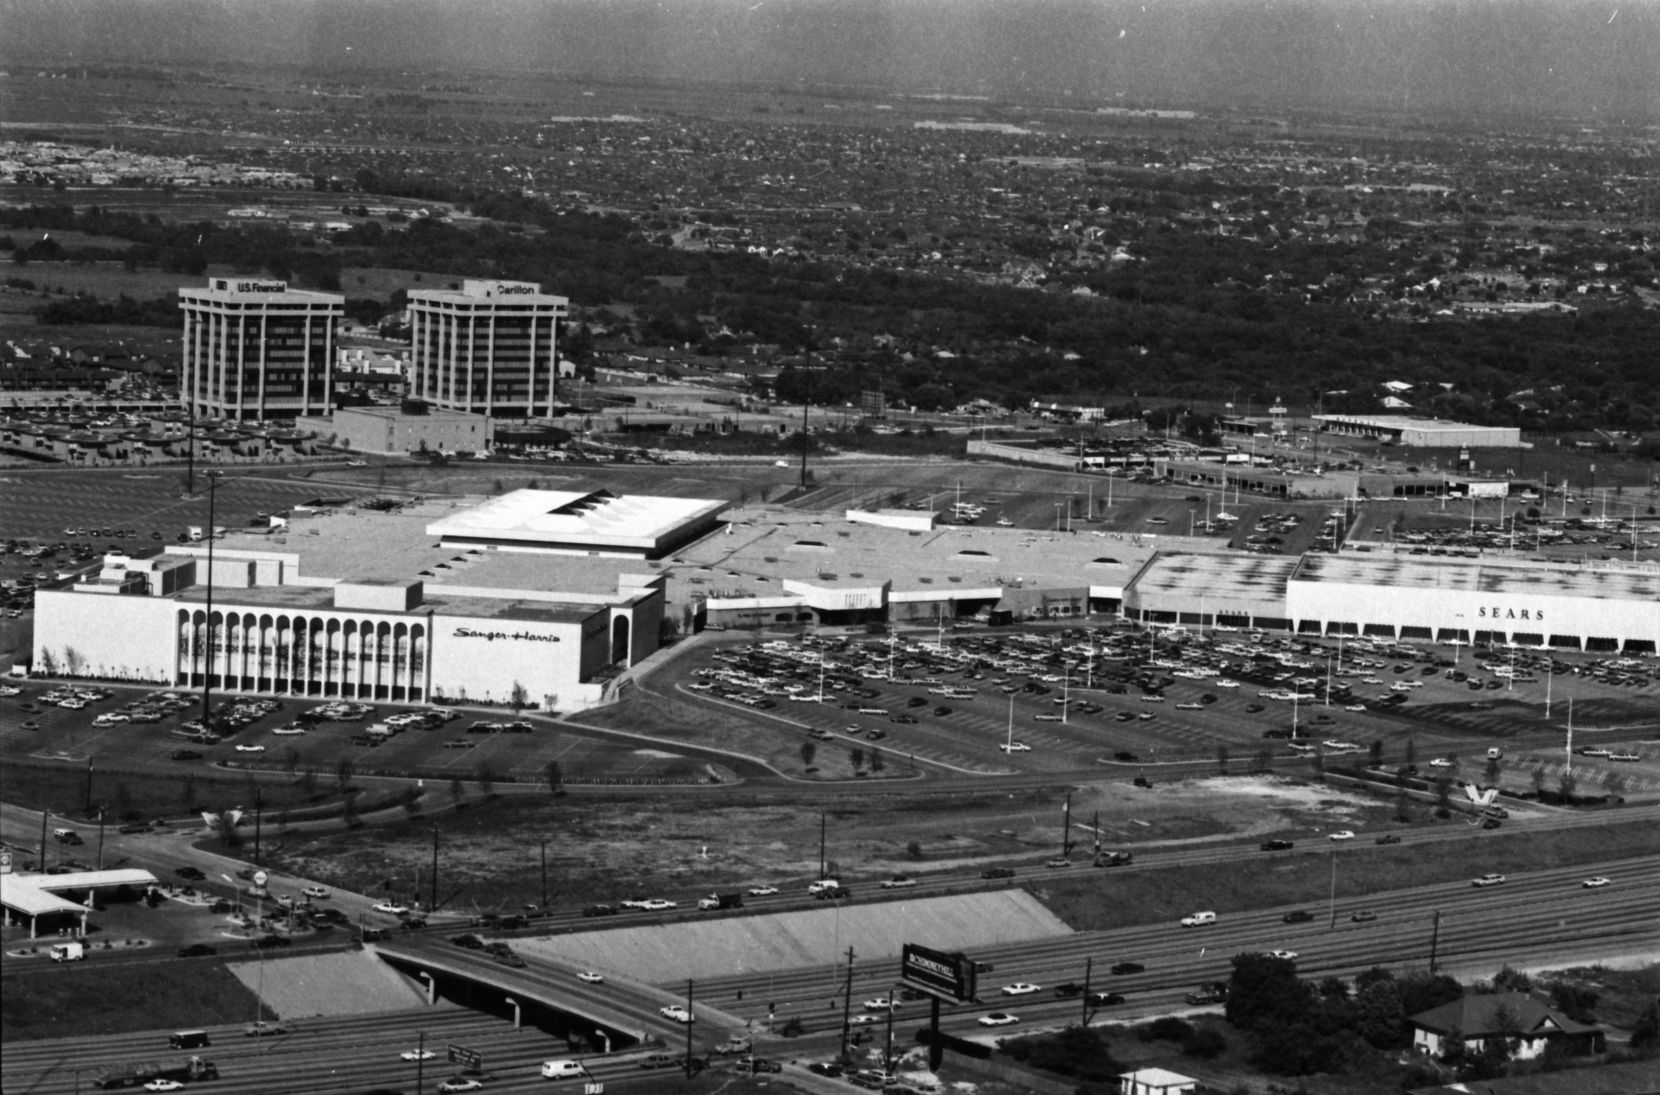 An aerial photo taken from a blimp in 1973 shows the vast Valley View Mall.